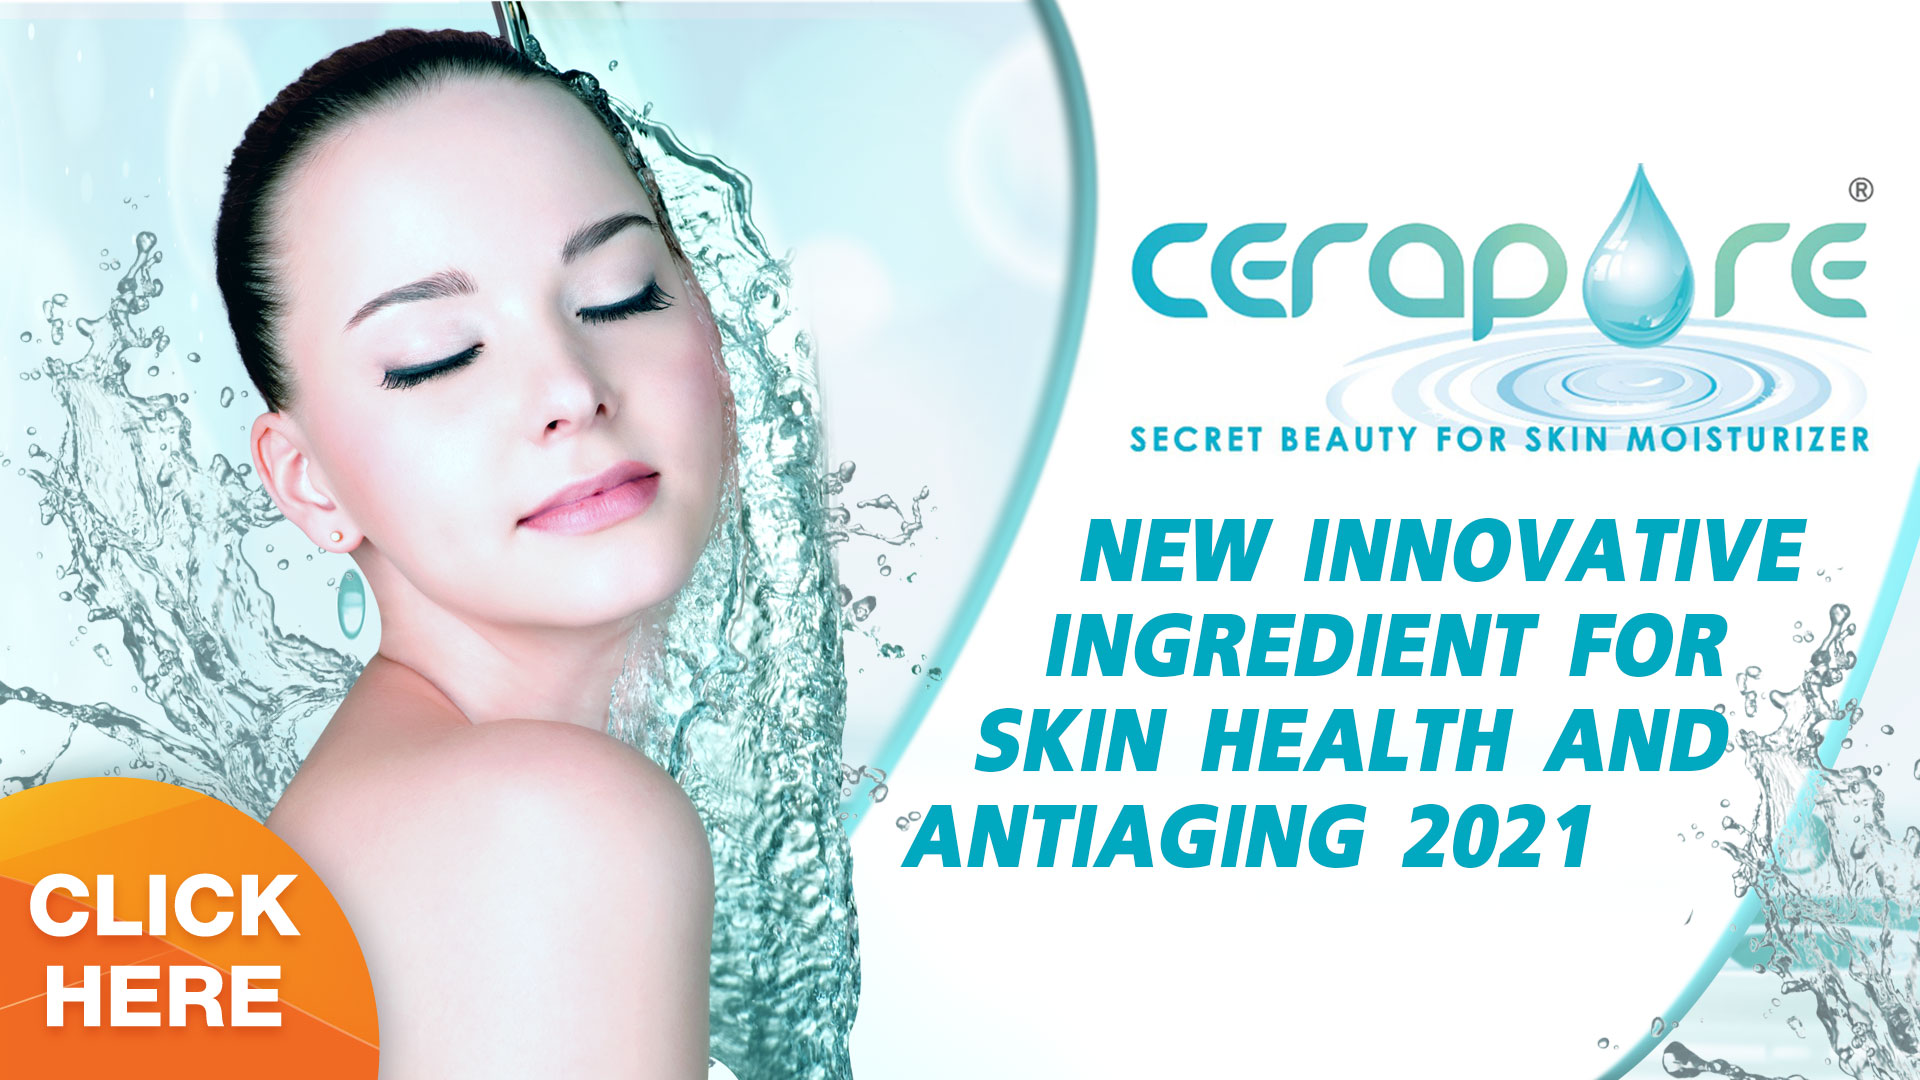 Cerapure new innovative ingredient for skin health and antiaging 2021